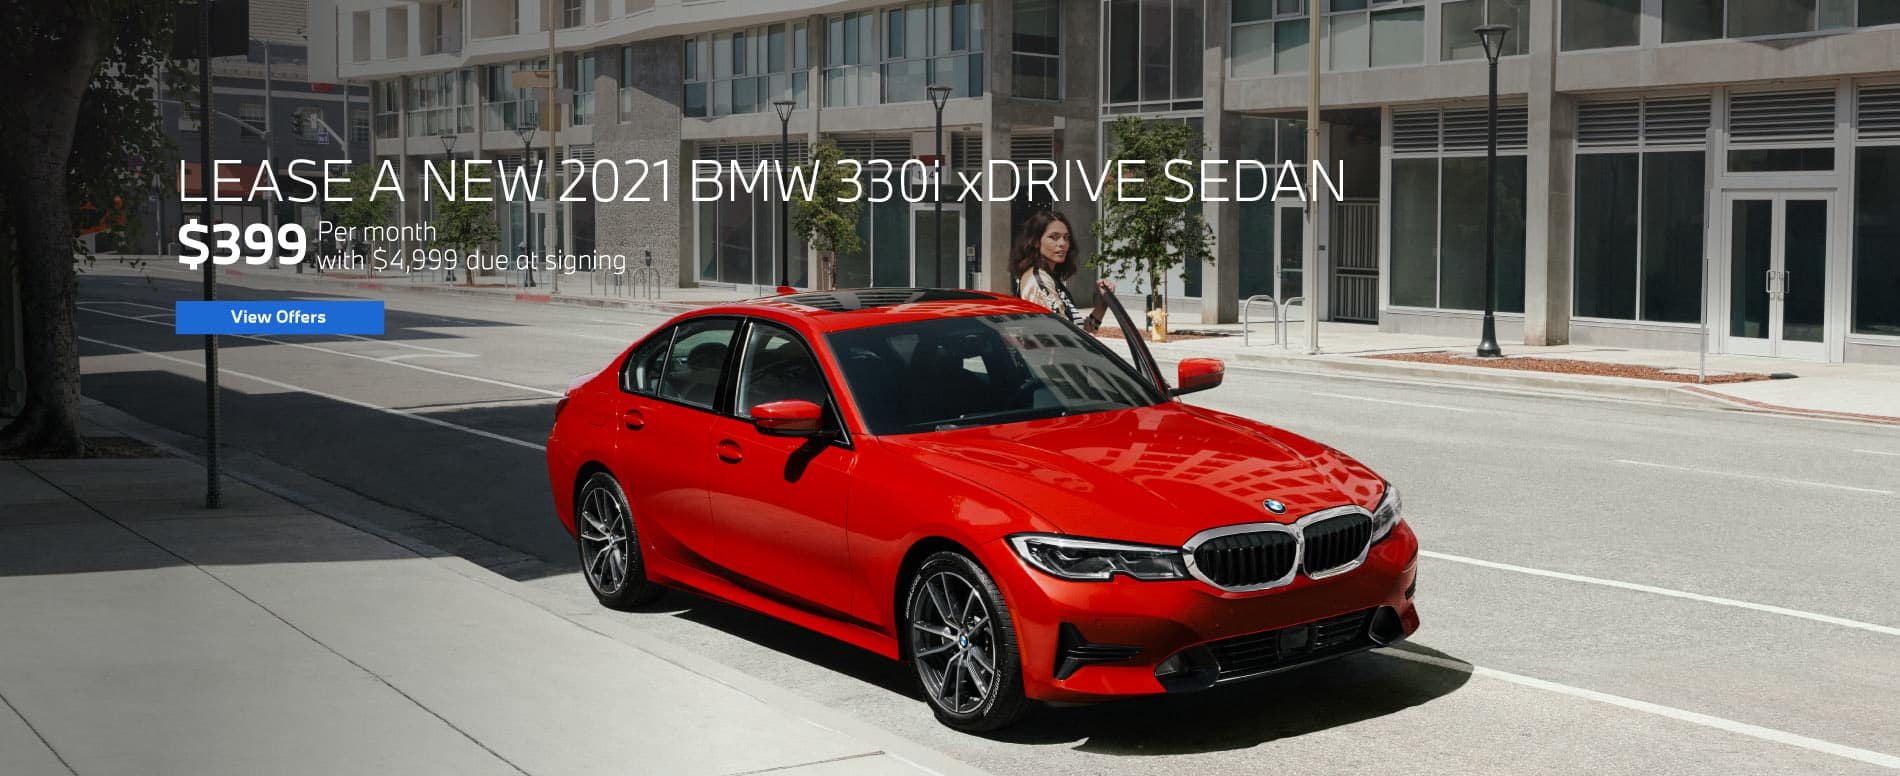 Lease a 2021 330i xDrive for $399 a month   View Offers